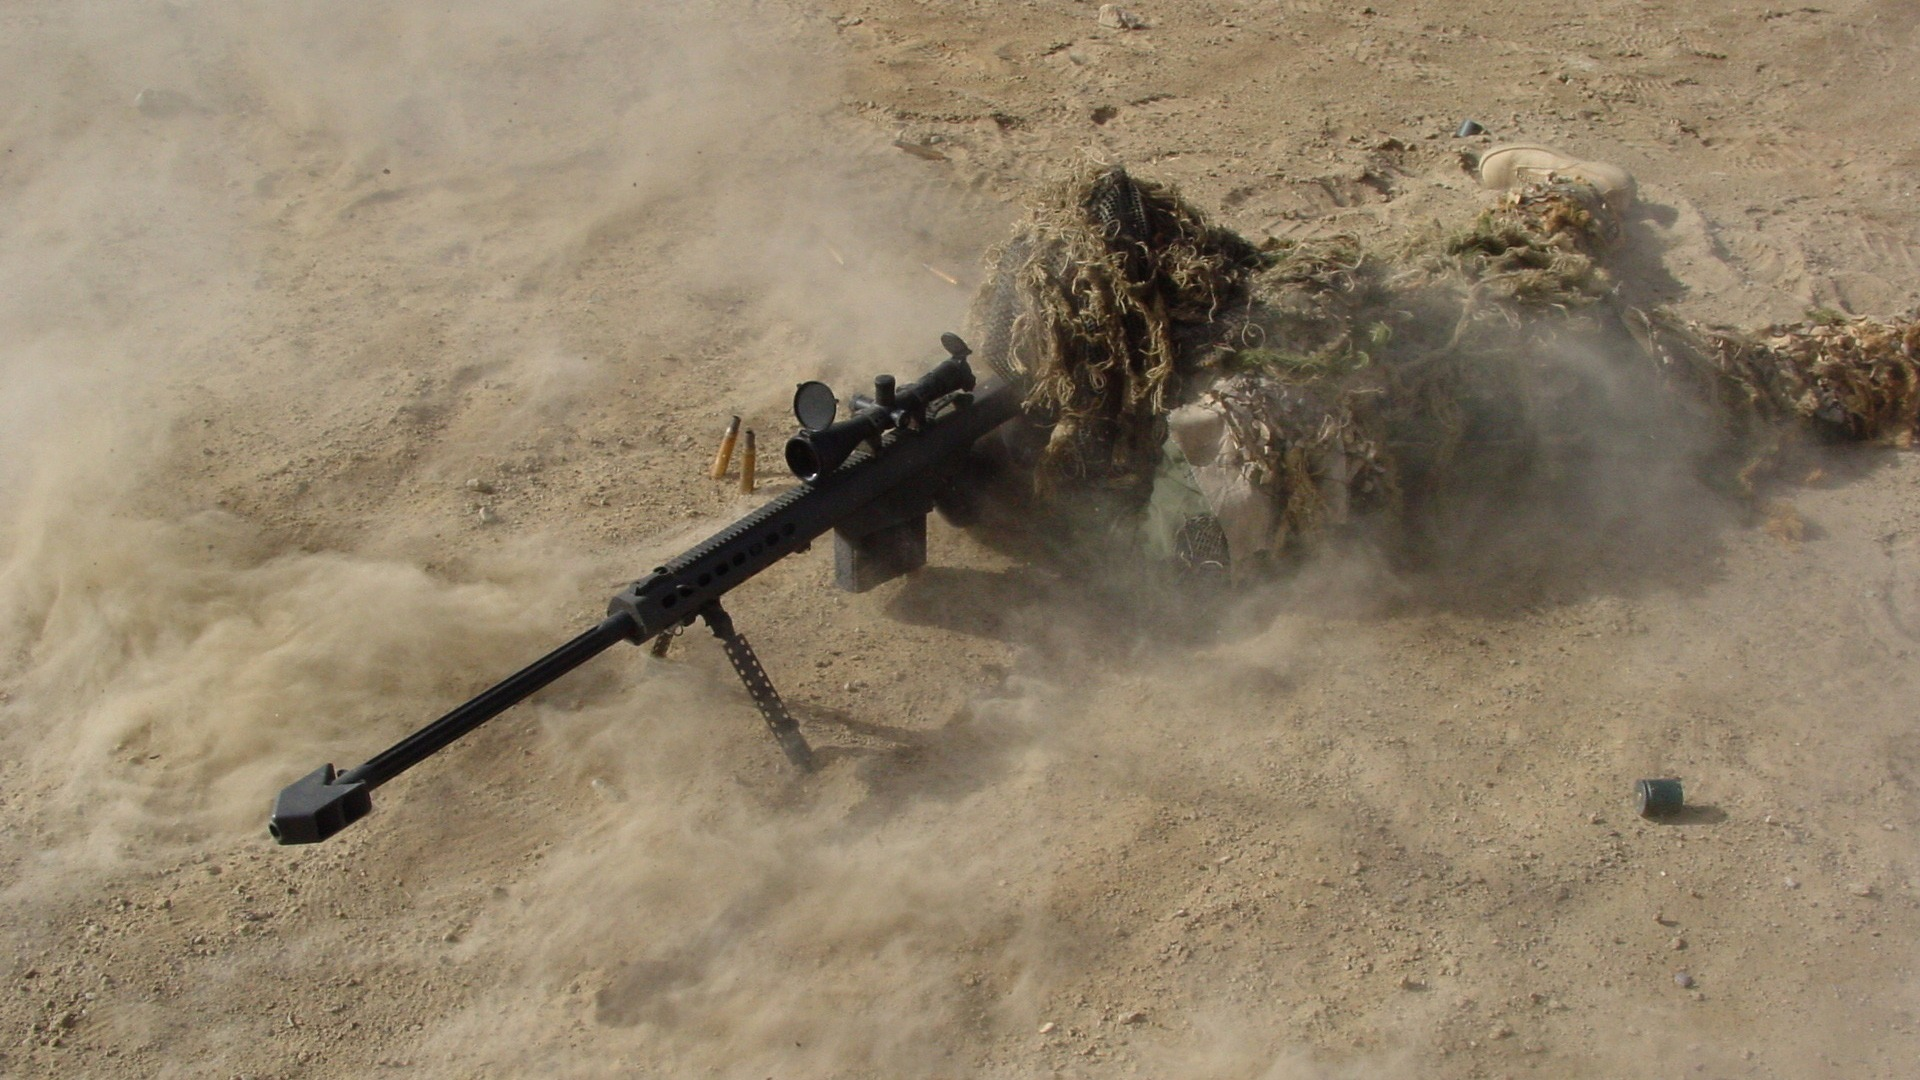 snipers camouflage Barrett HD Wallpaper